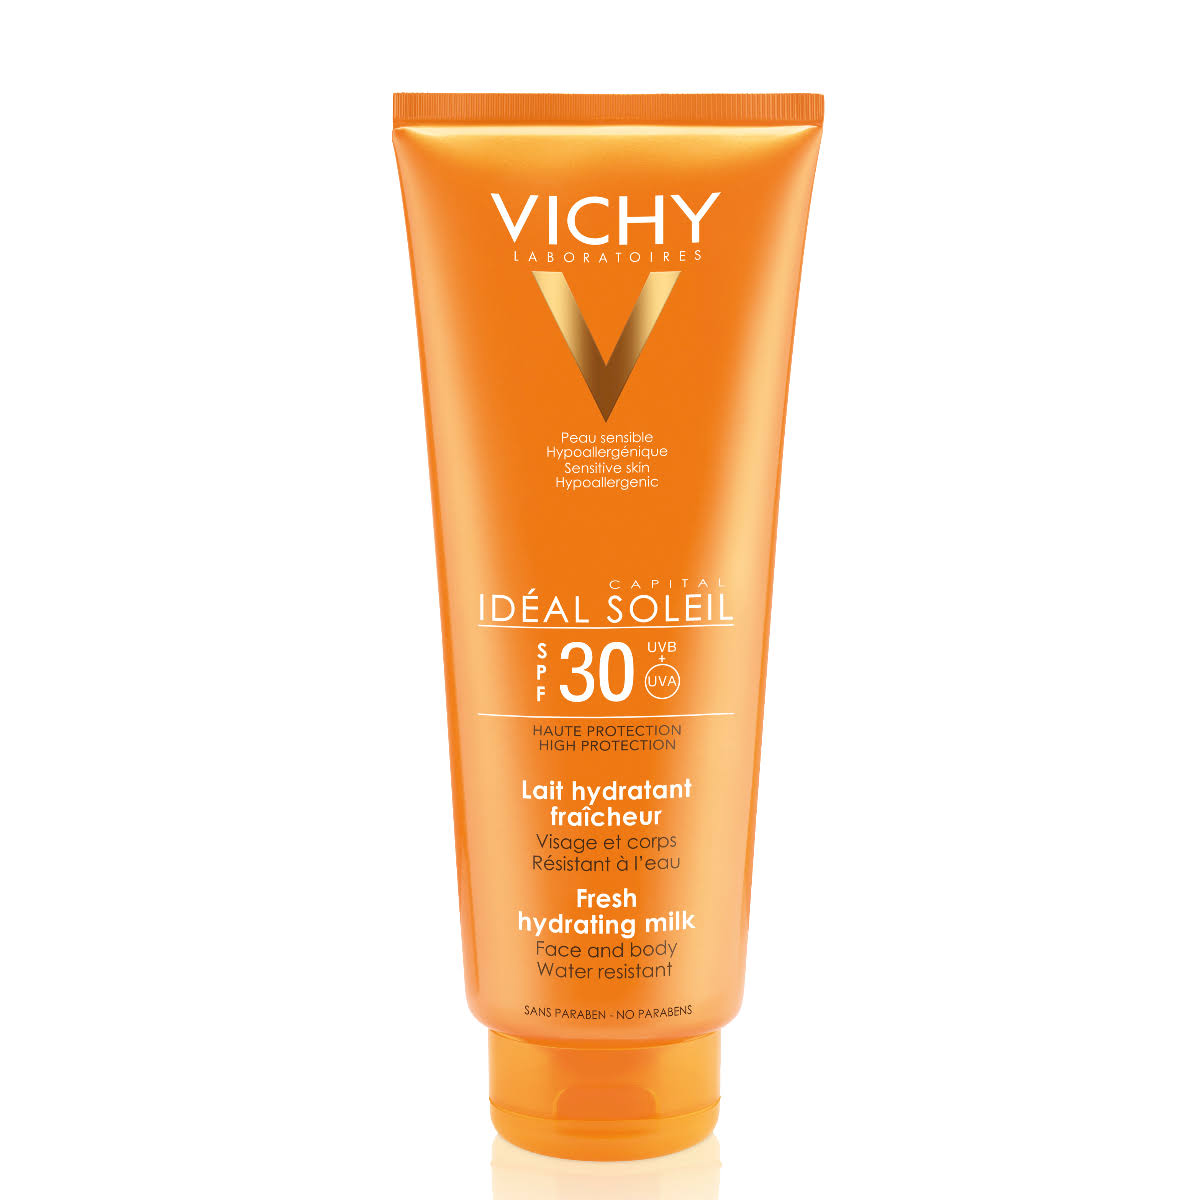 Vichy Capital Soleil Beach Protect Fresh Hydrating SPF 30 Face and Body Milk - 300ml